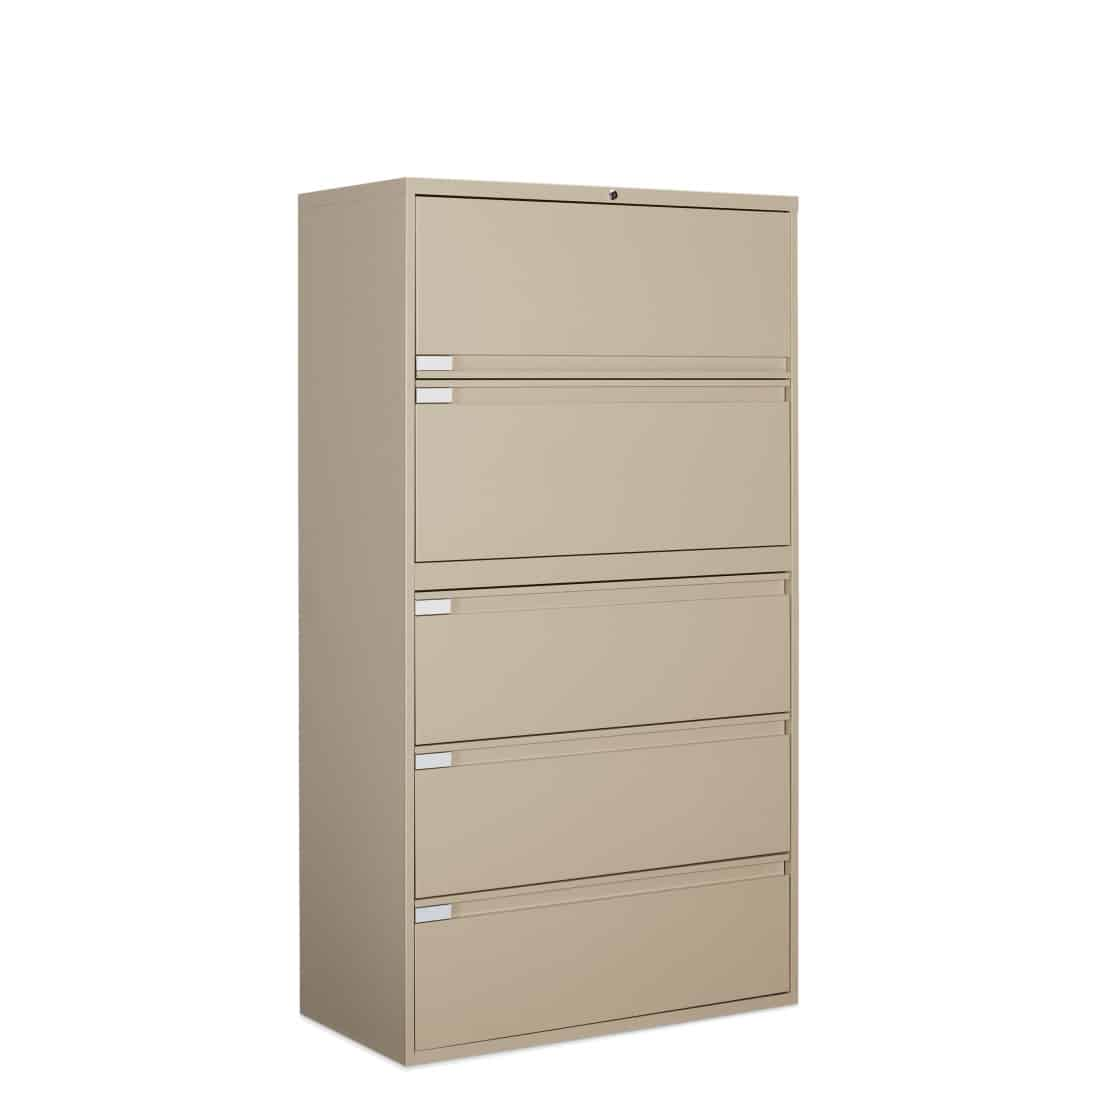 5 drawer lateral file 36W